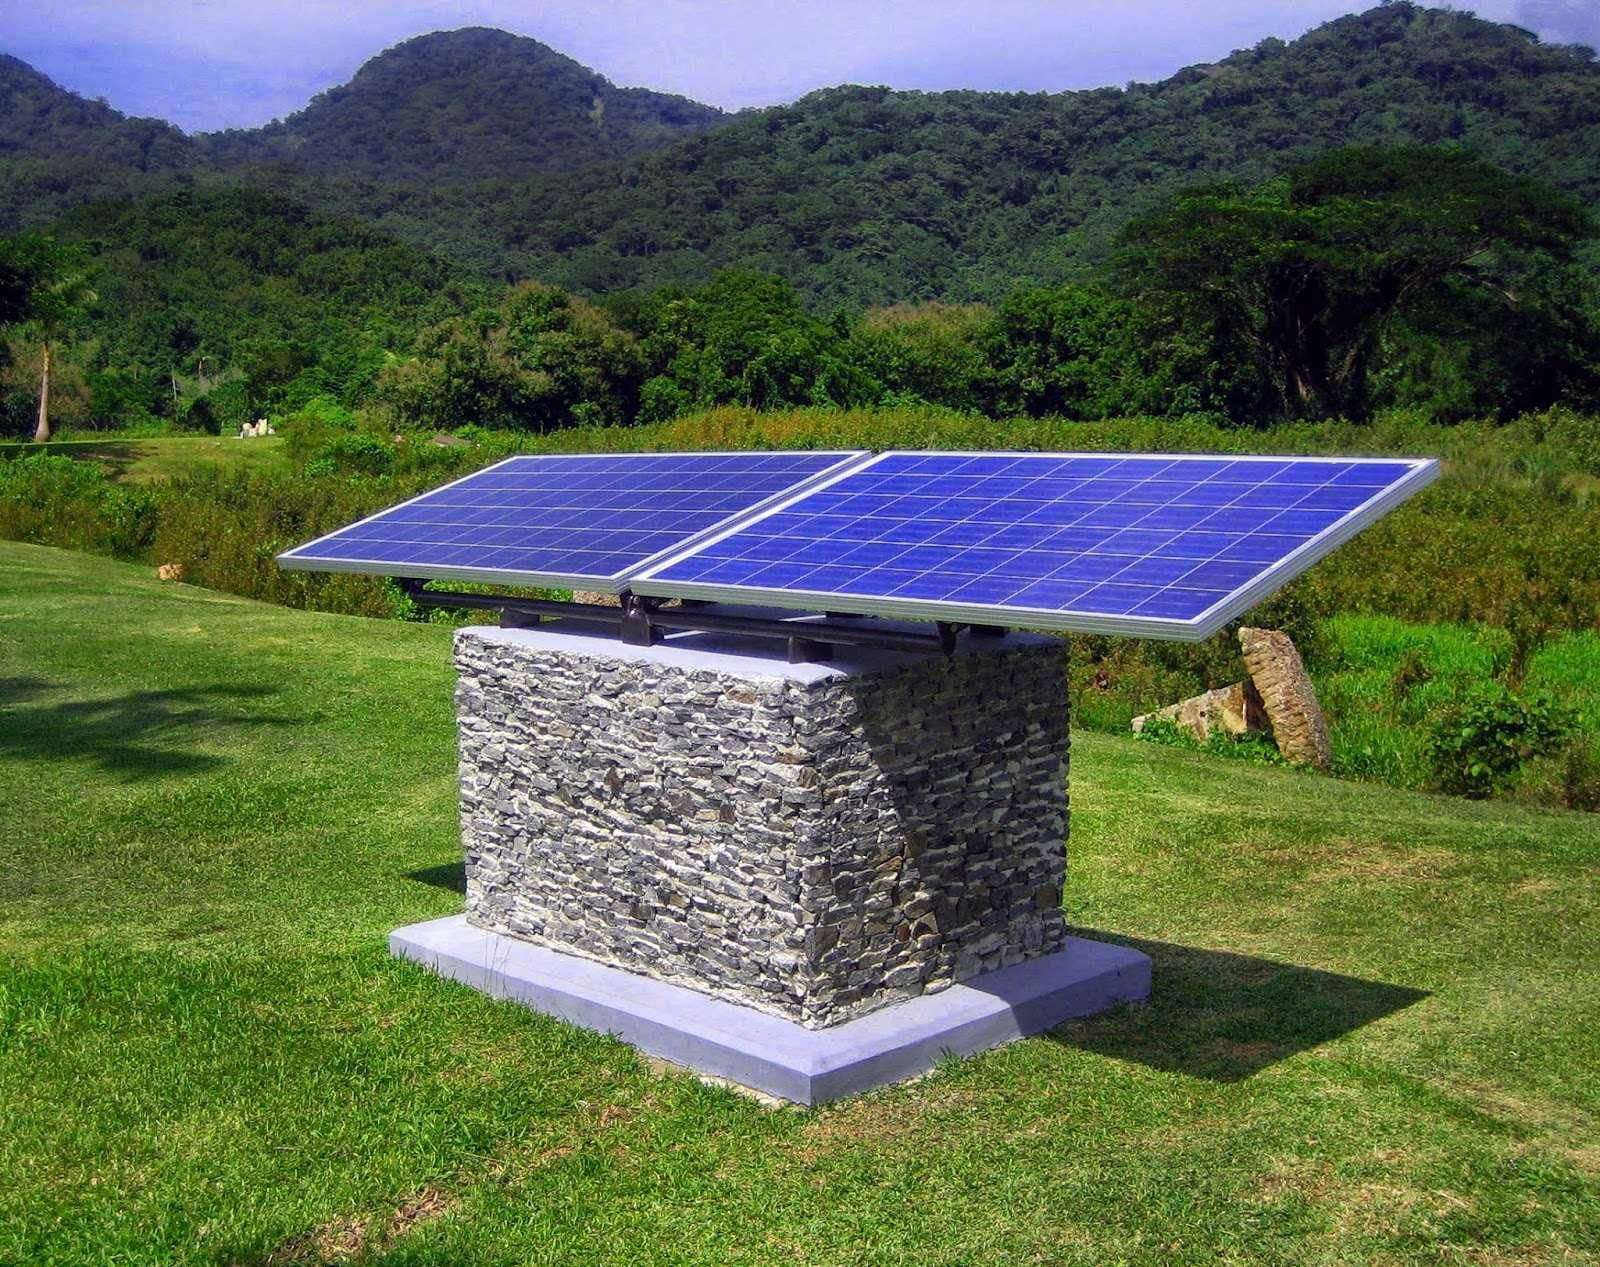 solar power facts (With images) Solar power facts, Solar